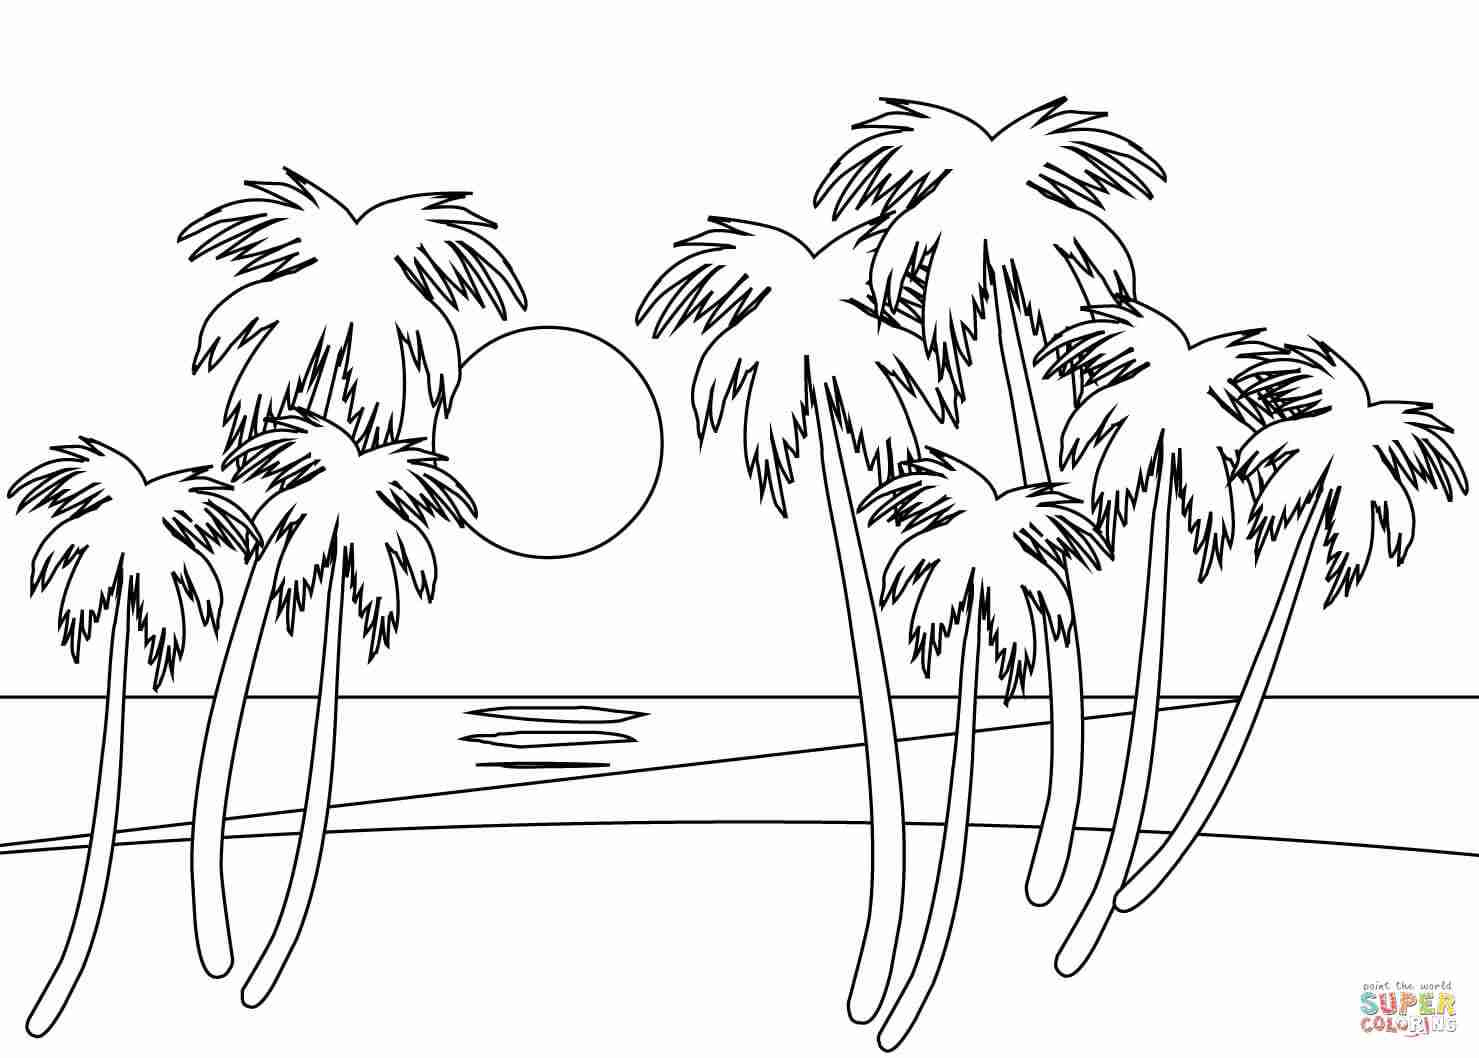 coloring image sunset beach sunset coloring pages at getcoloringscom free sunset coloring image